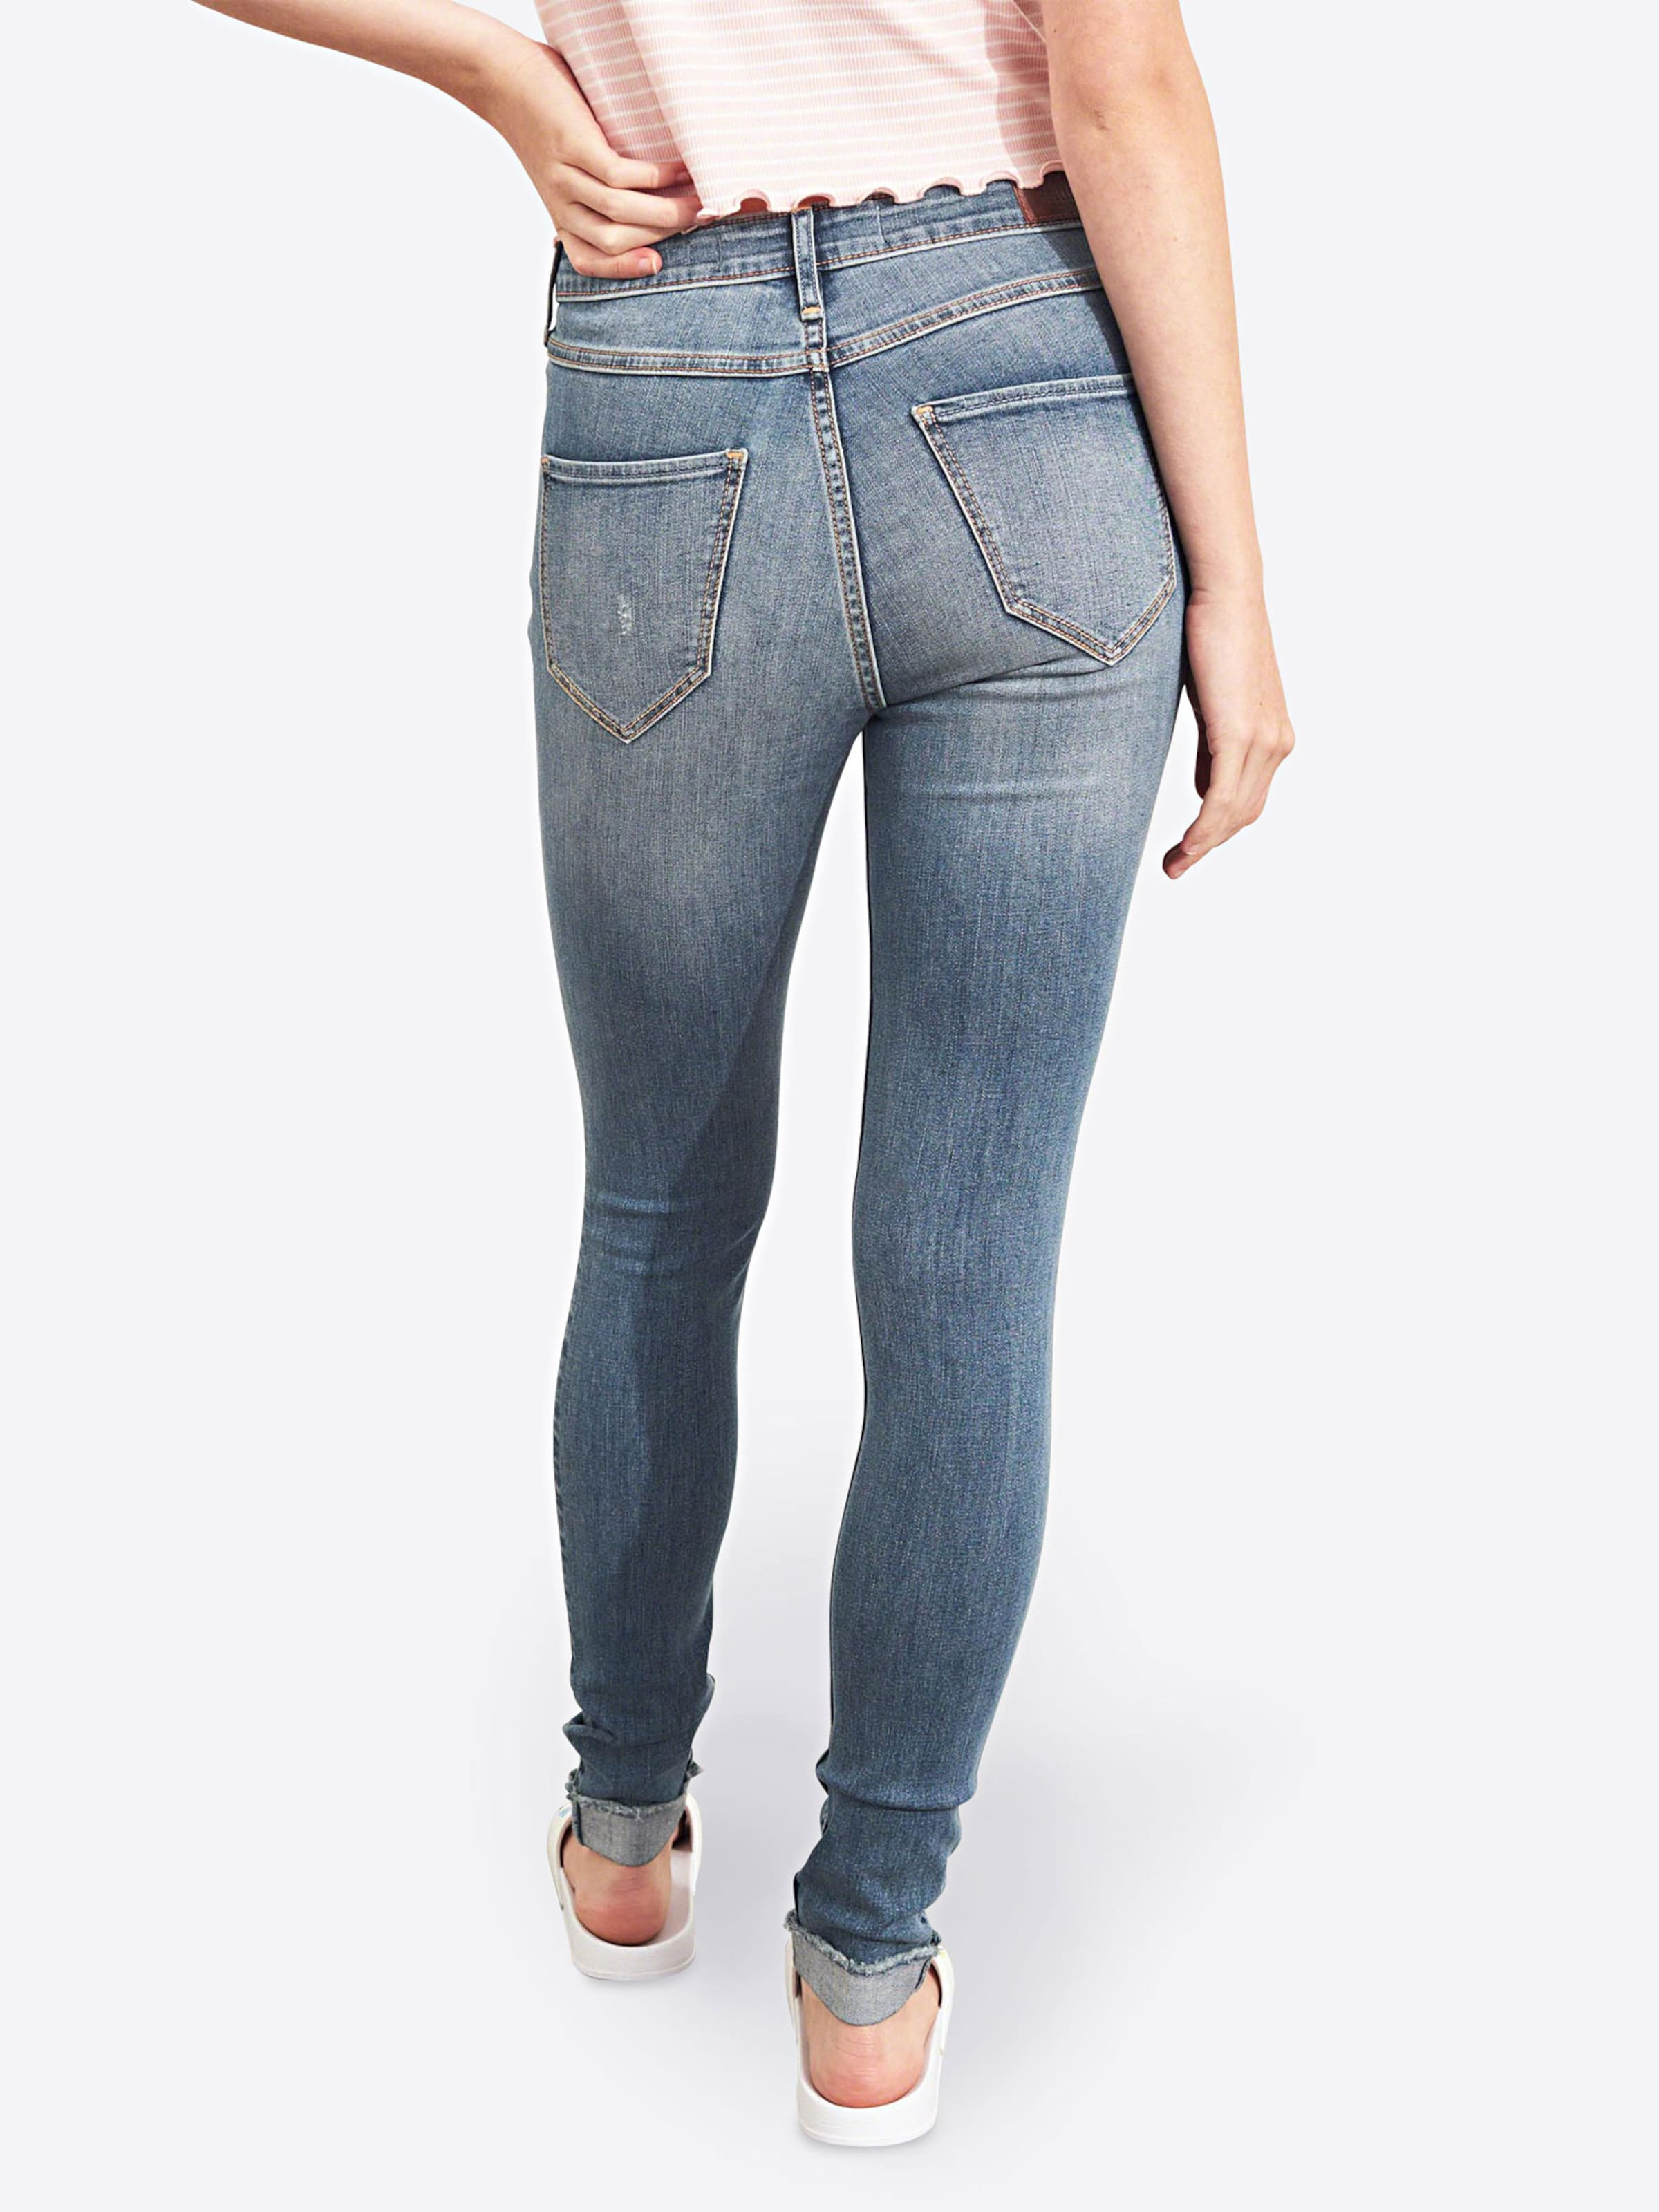 Jeans In Cuff' Blue Denim Hollister 'fray WYEH2D9I